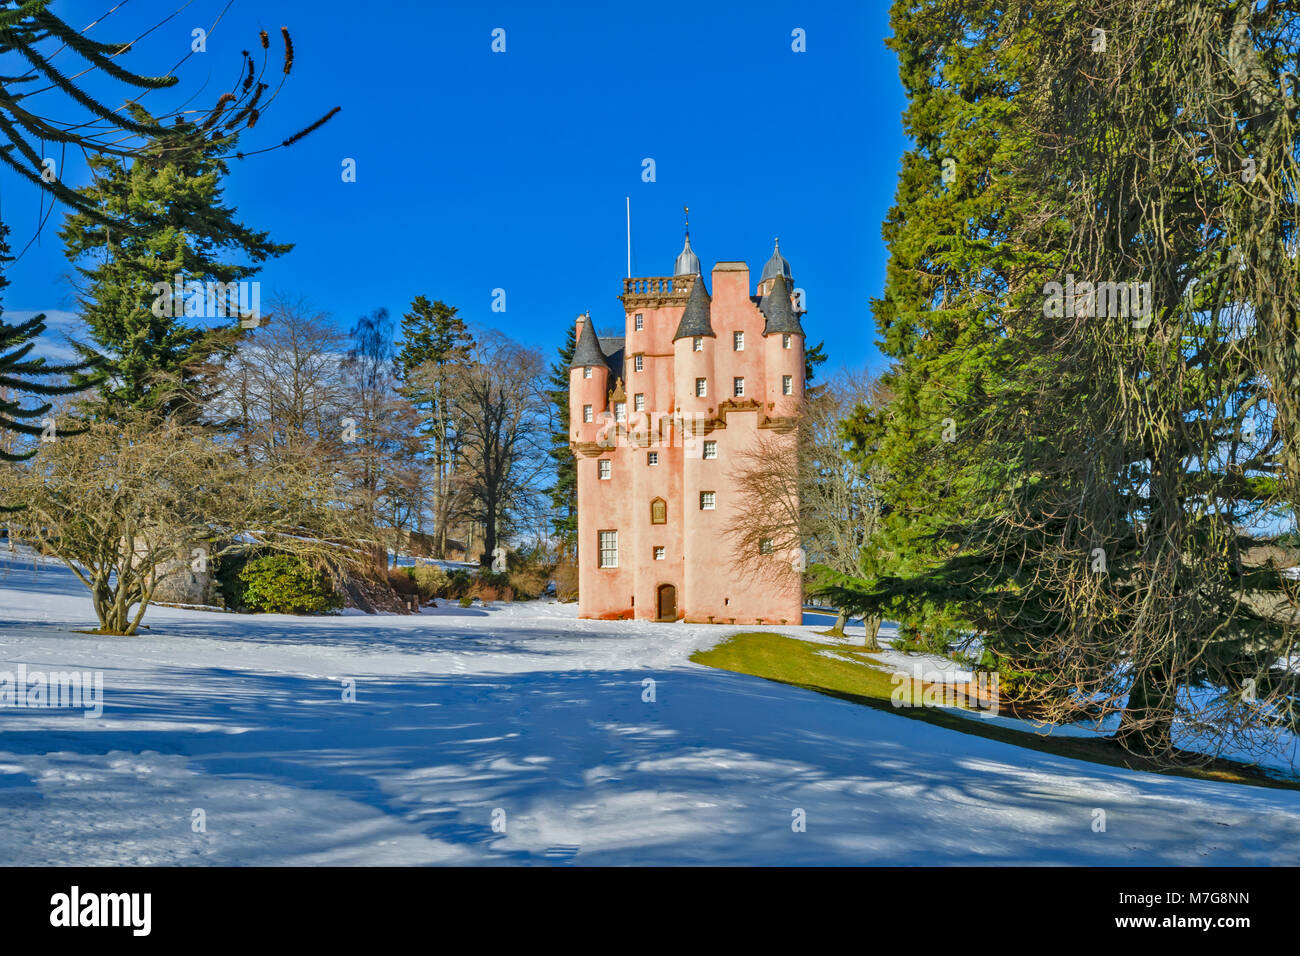 CRAIGIEVAR CASTLE ABERDEENSHIRE SCOTLAND THE PINK TOWER SURROUNDED BY EVERGREEN FIR TREES AND WINTER SNOW - Stock Image